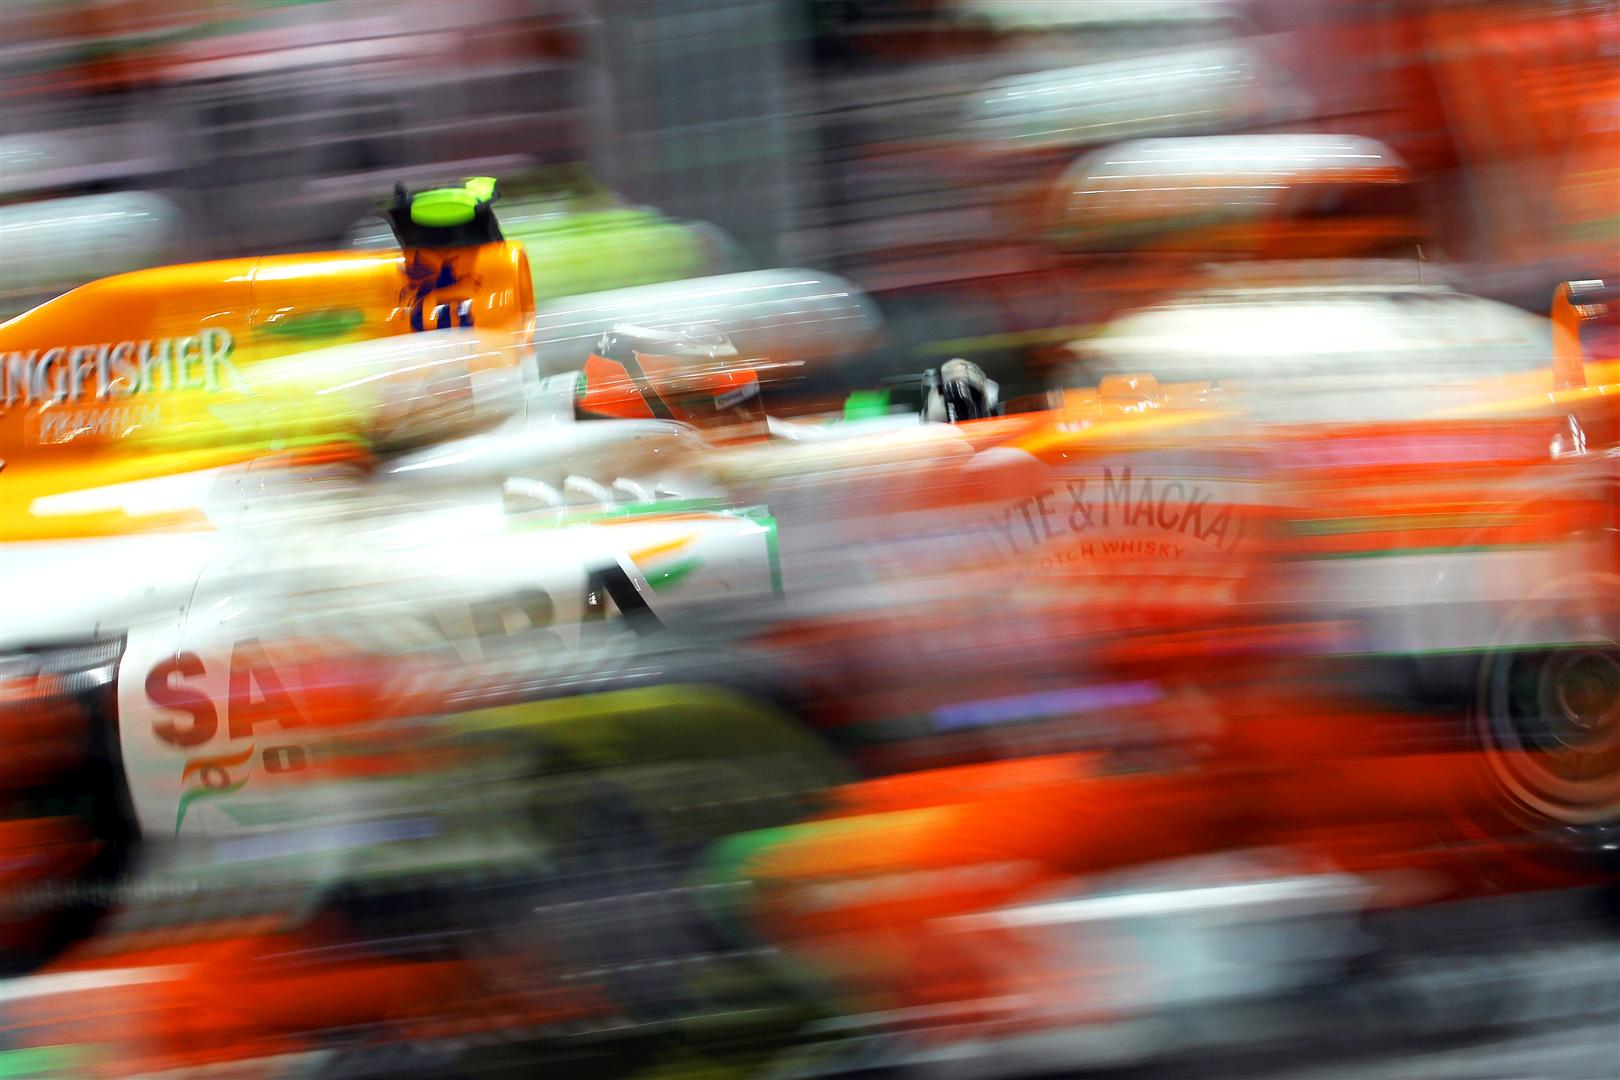 Force India: One podium could decide 6th